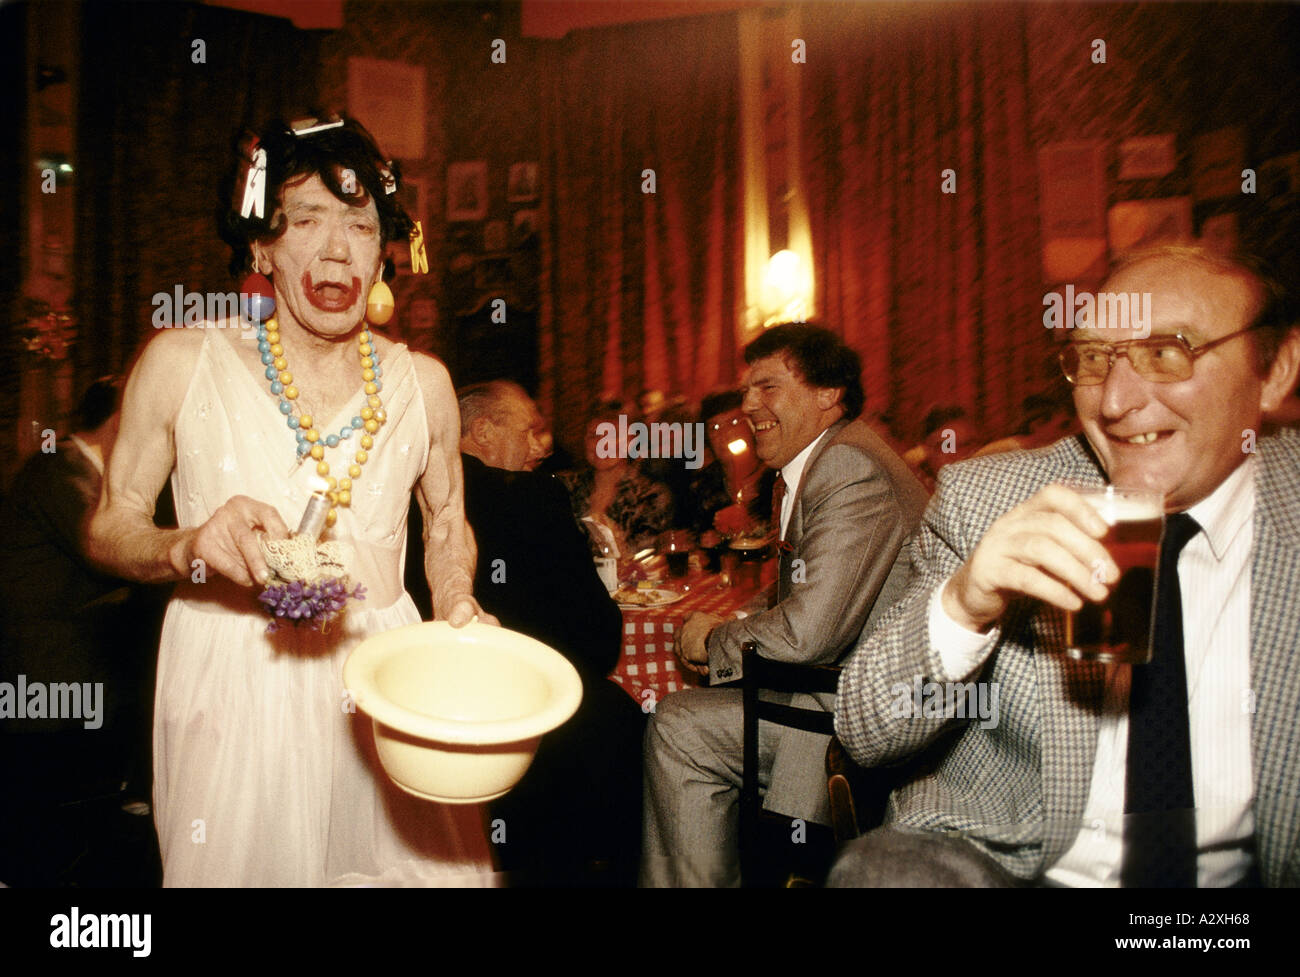 drunk man in drag at christmas party blackpool stock image - Drunk Christmas